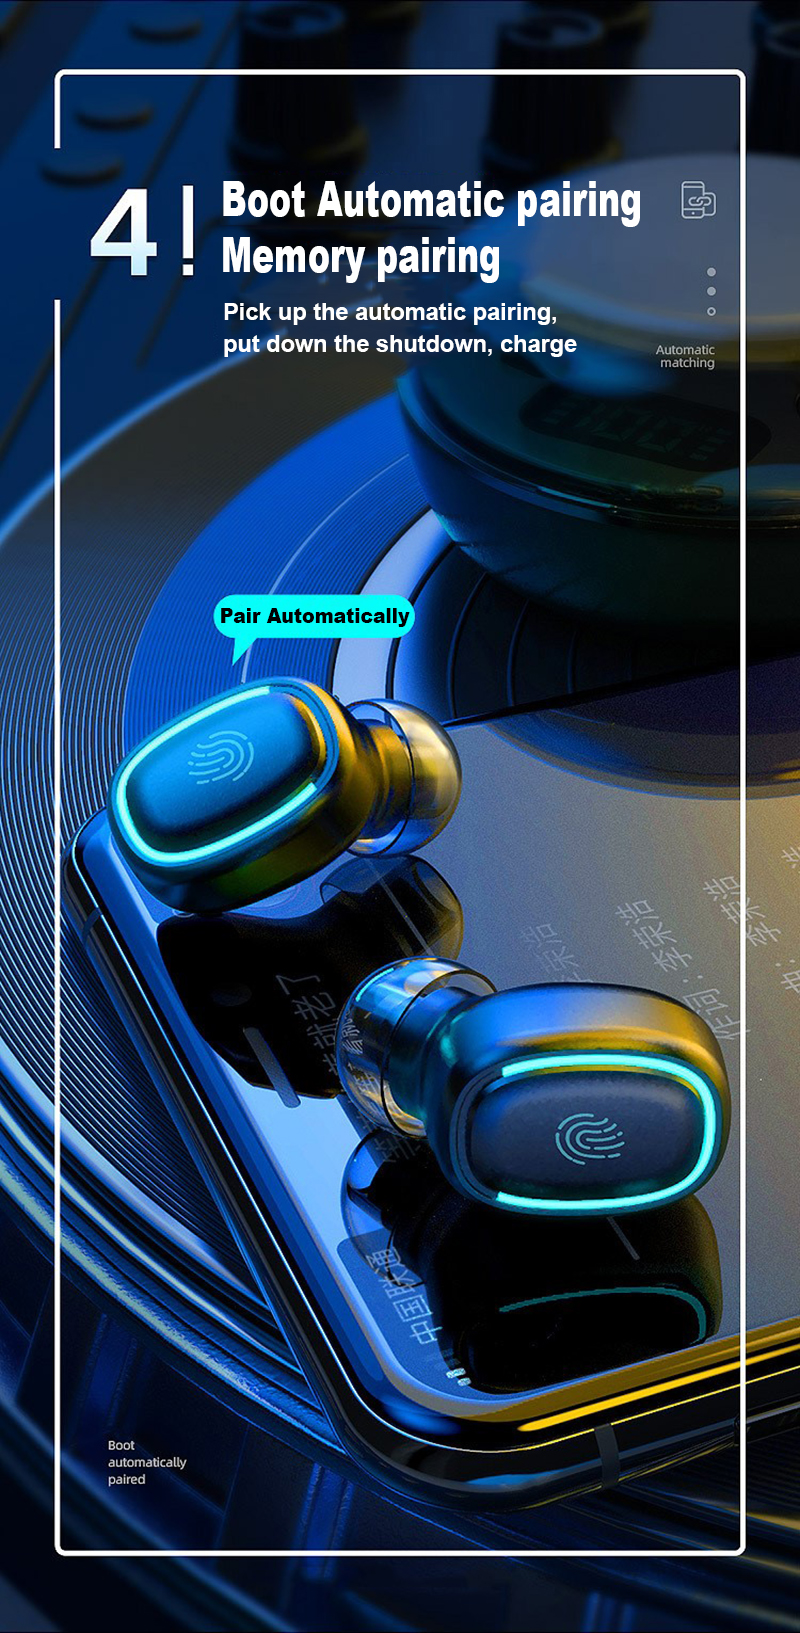 Wireless Earbuds Bluetooth 5.0 Earphones Fingerprint Touch IPX5 Waterproof LED Display In-ear Sports Stereo Wireless Headphones